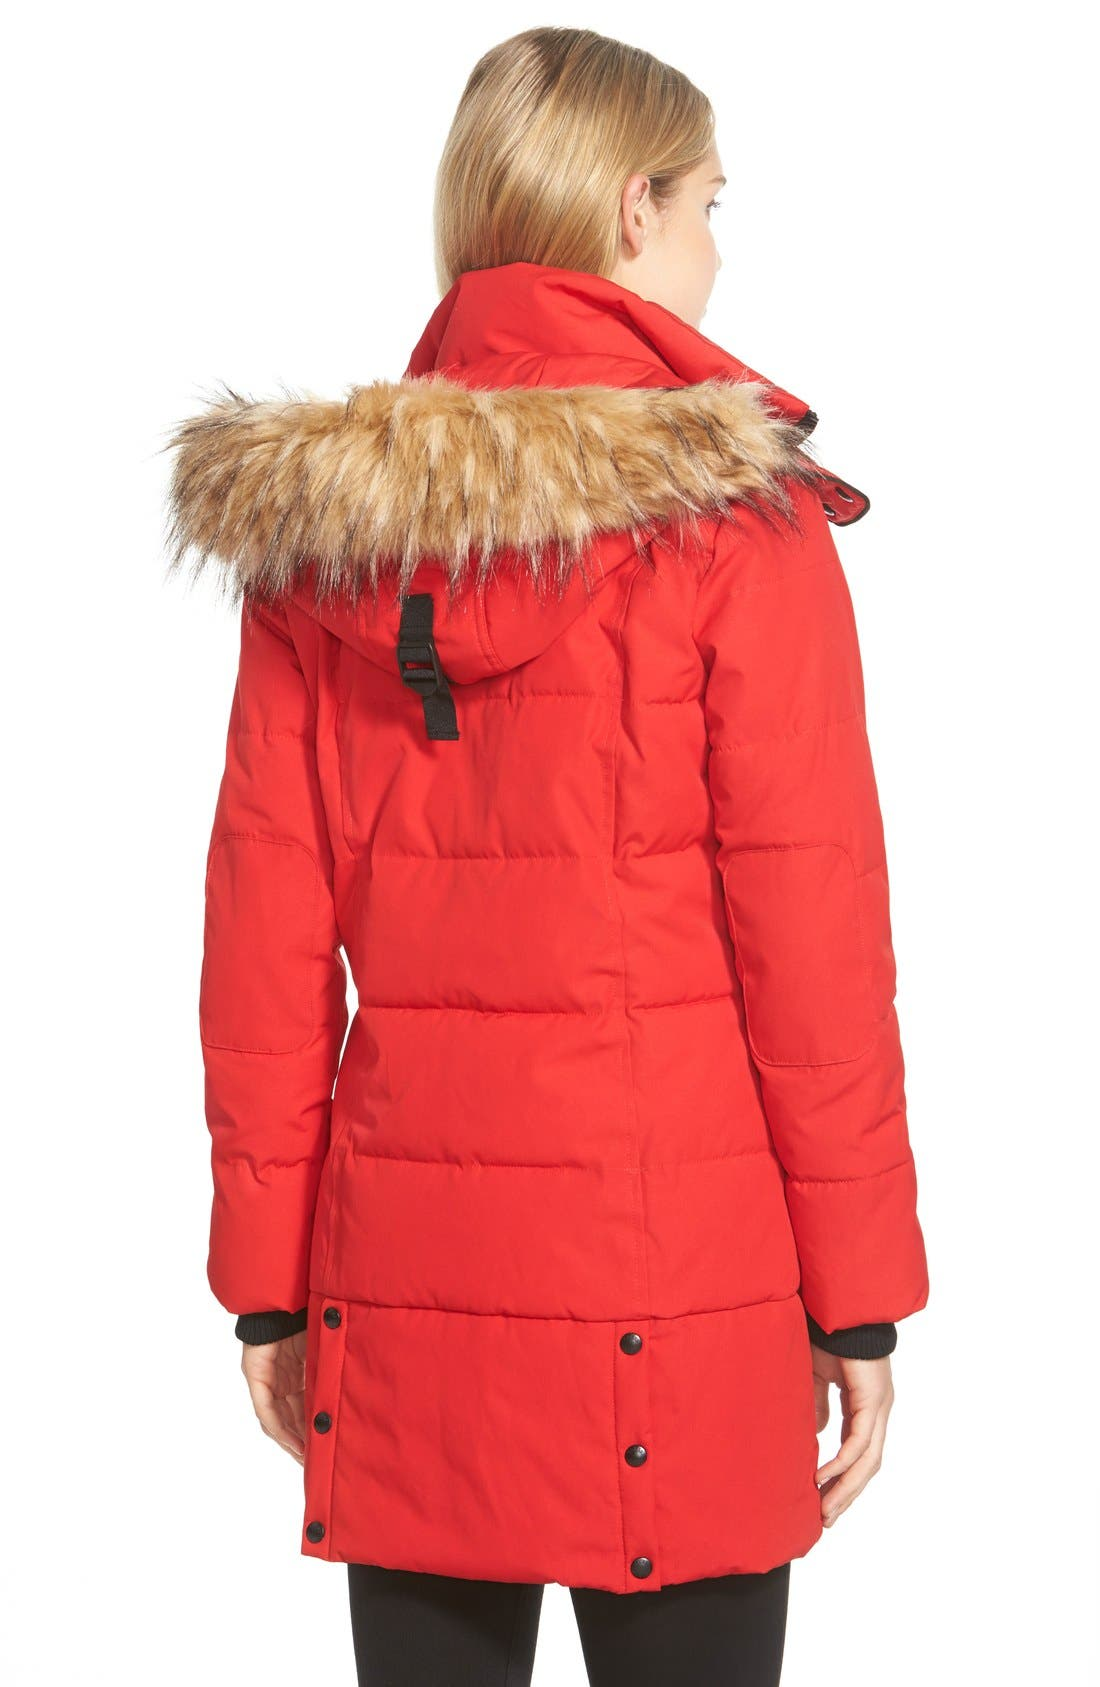 'Expedition' Quilted Parka with Faux Fur Trim,                             Alternate thumbnail 2, color,                             648